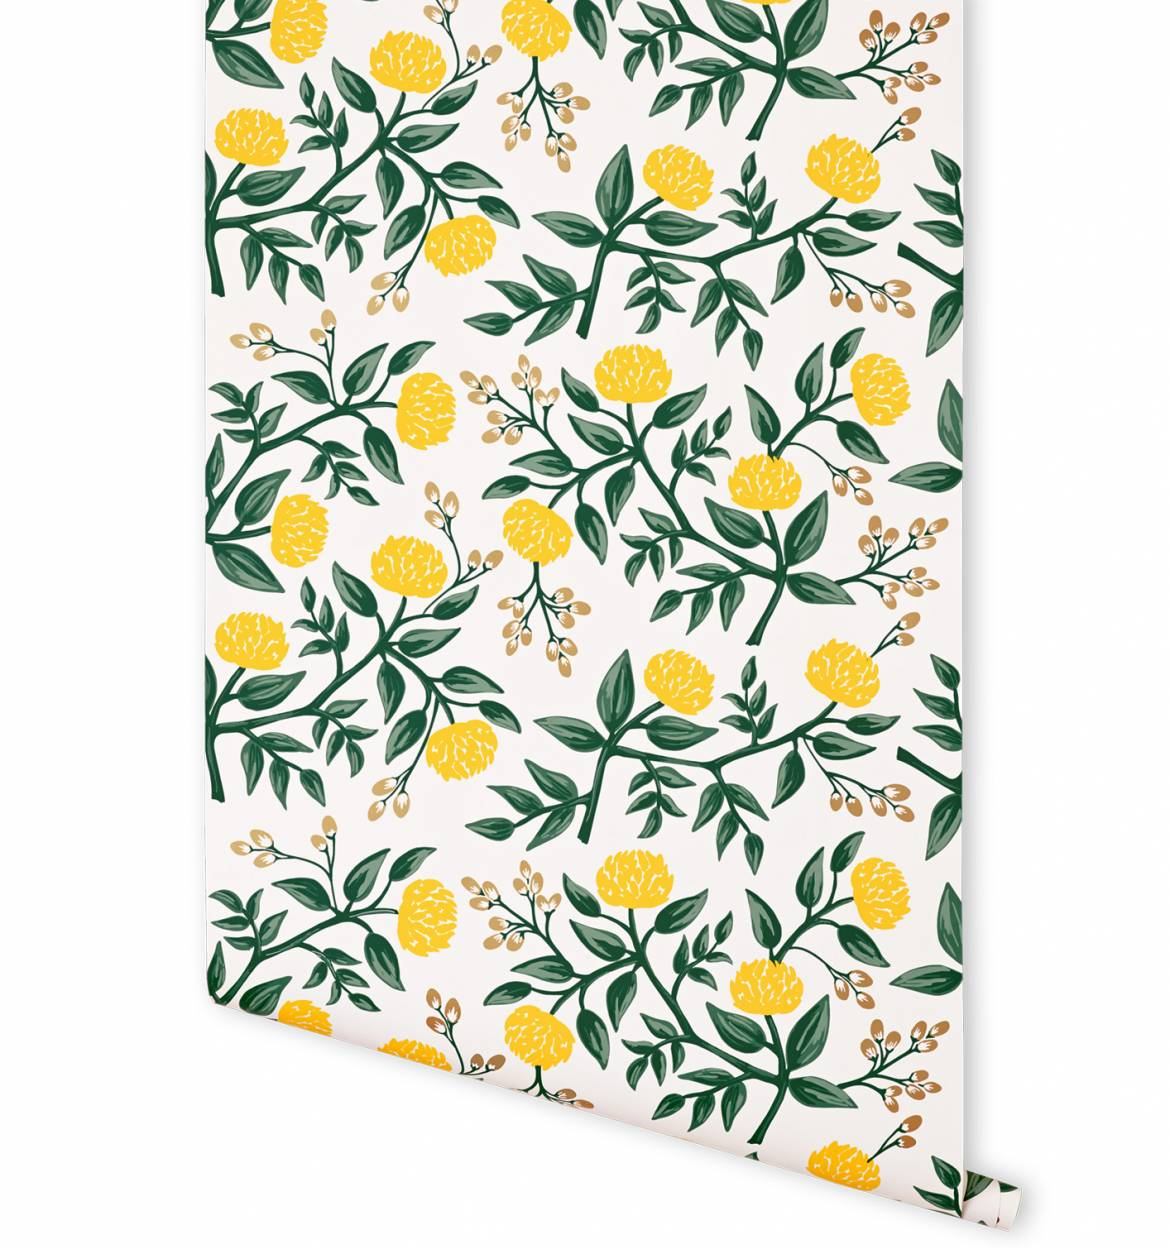 Peonies Yellow Wallpaper by RIFLE PAPER Co Made in USA 1170x1248